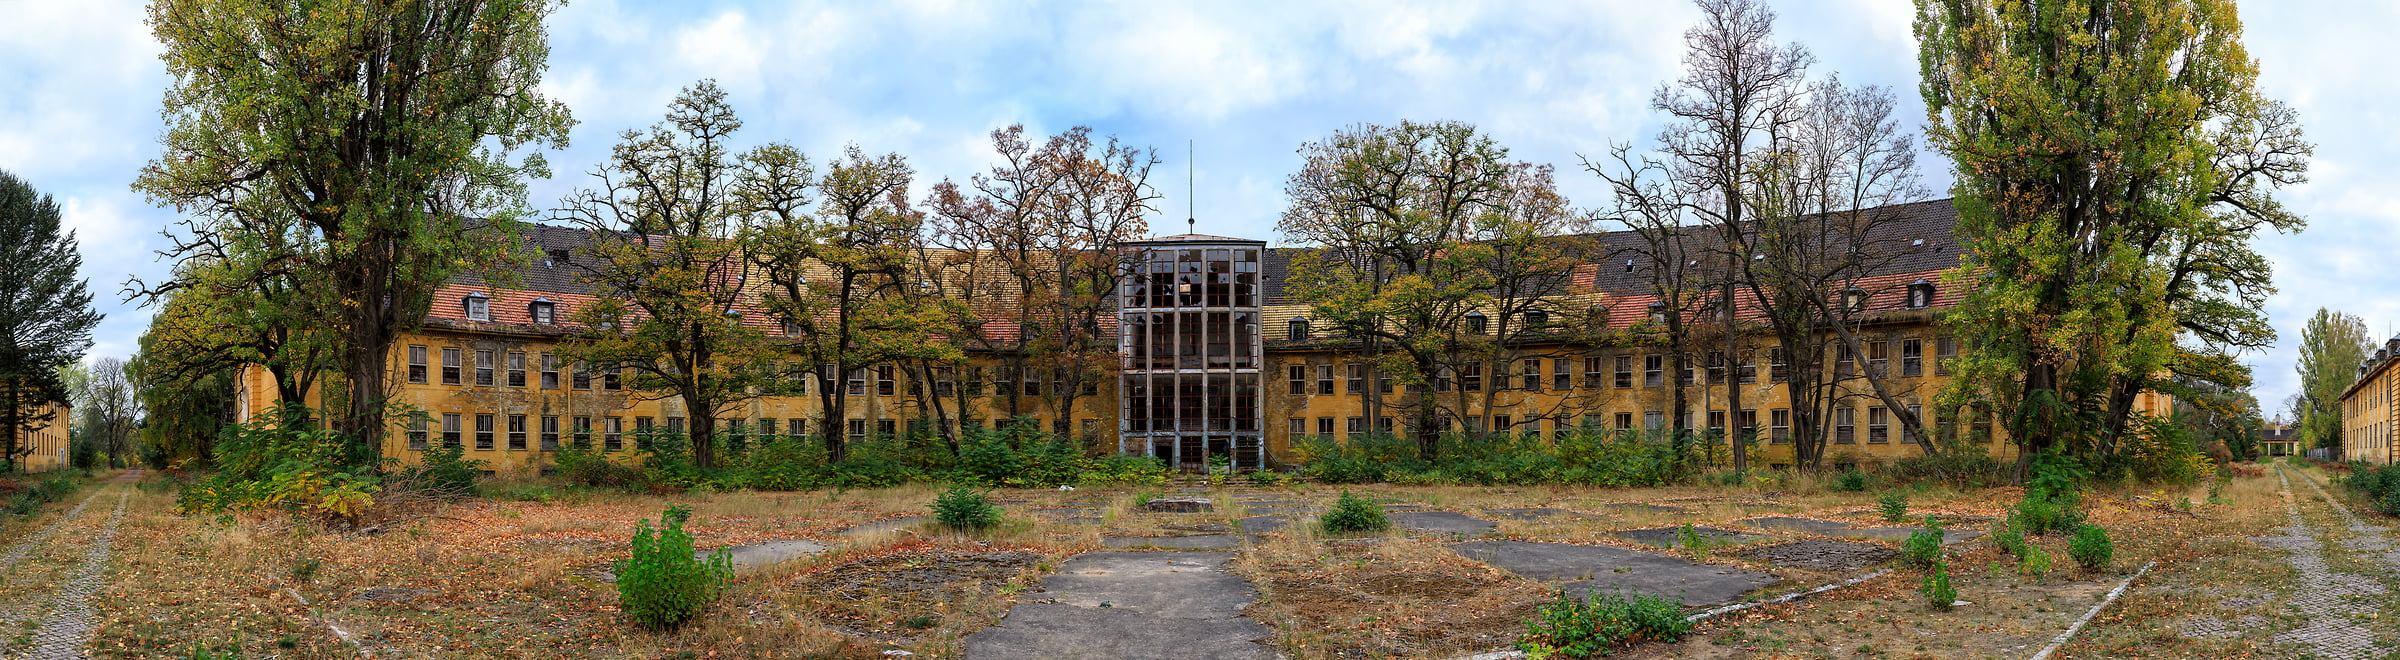 1,054 megapixels! A very high resolution, large-format VAST photo of a creepy abandoned building; panorama photograph created by Scott Dimond in Juterbog, Germany.